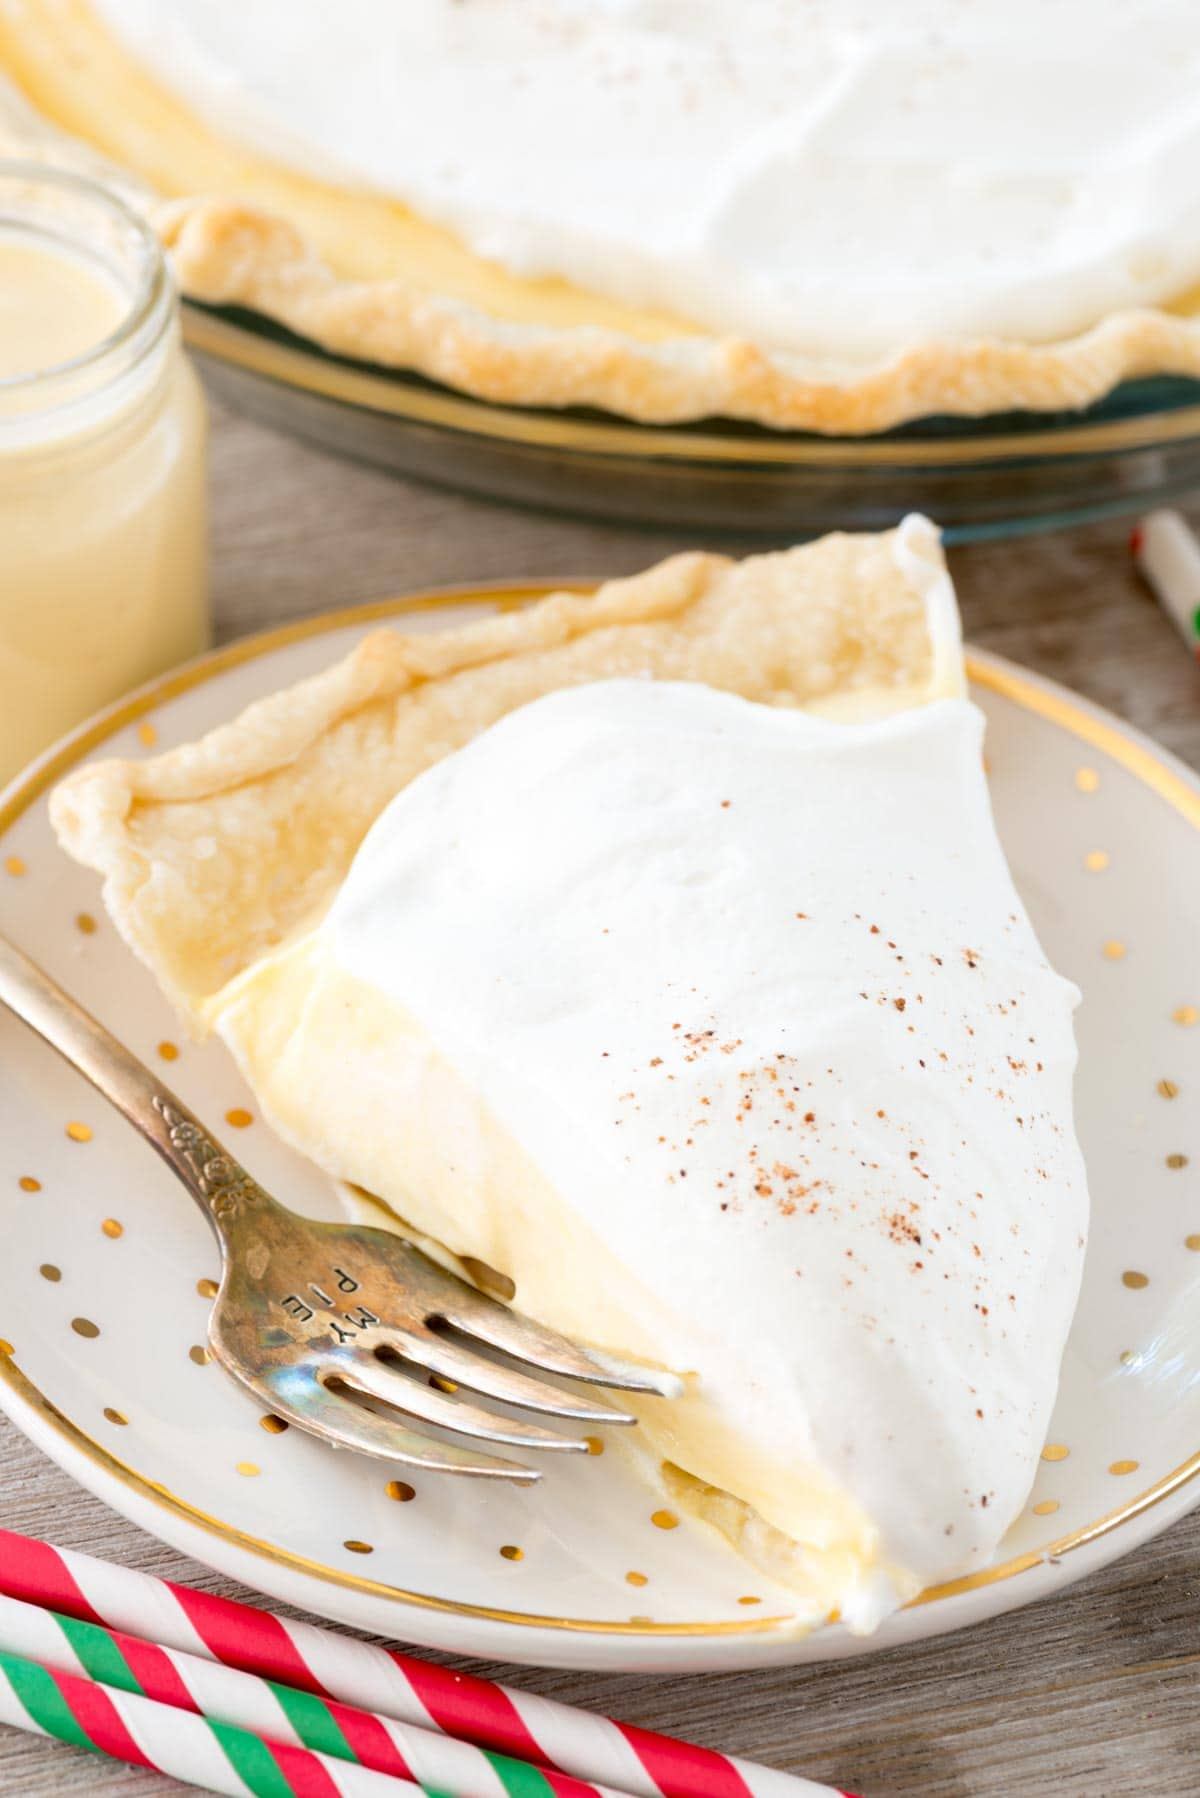 Easy Eggnog Pie - this cream pie recipe has only 4 ingredients! It's light and airy and tastes just like eggnog in a pie crust.